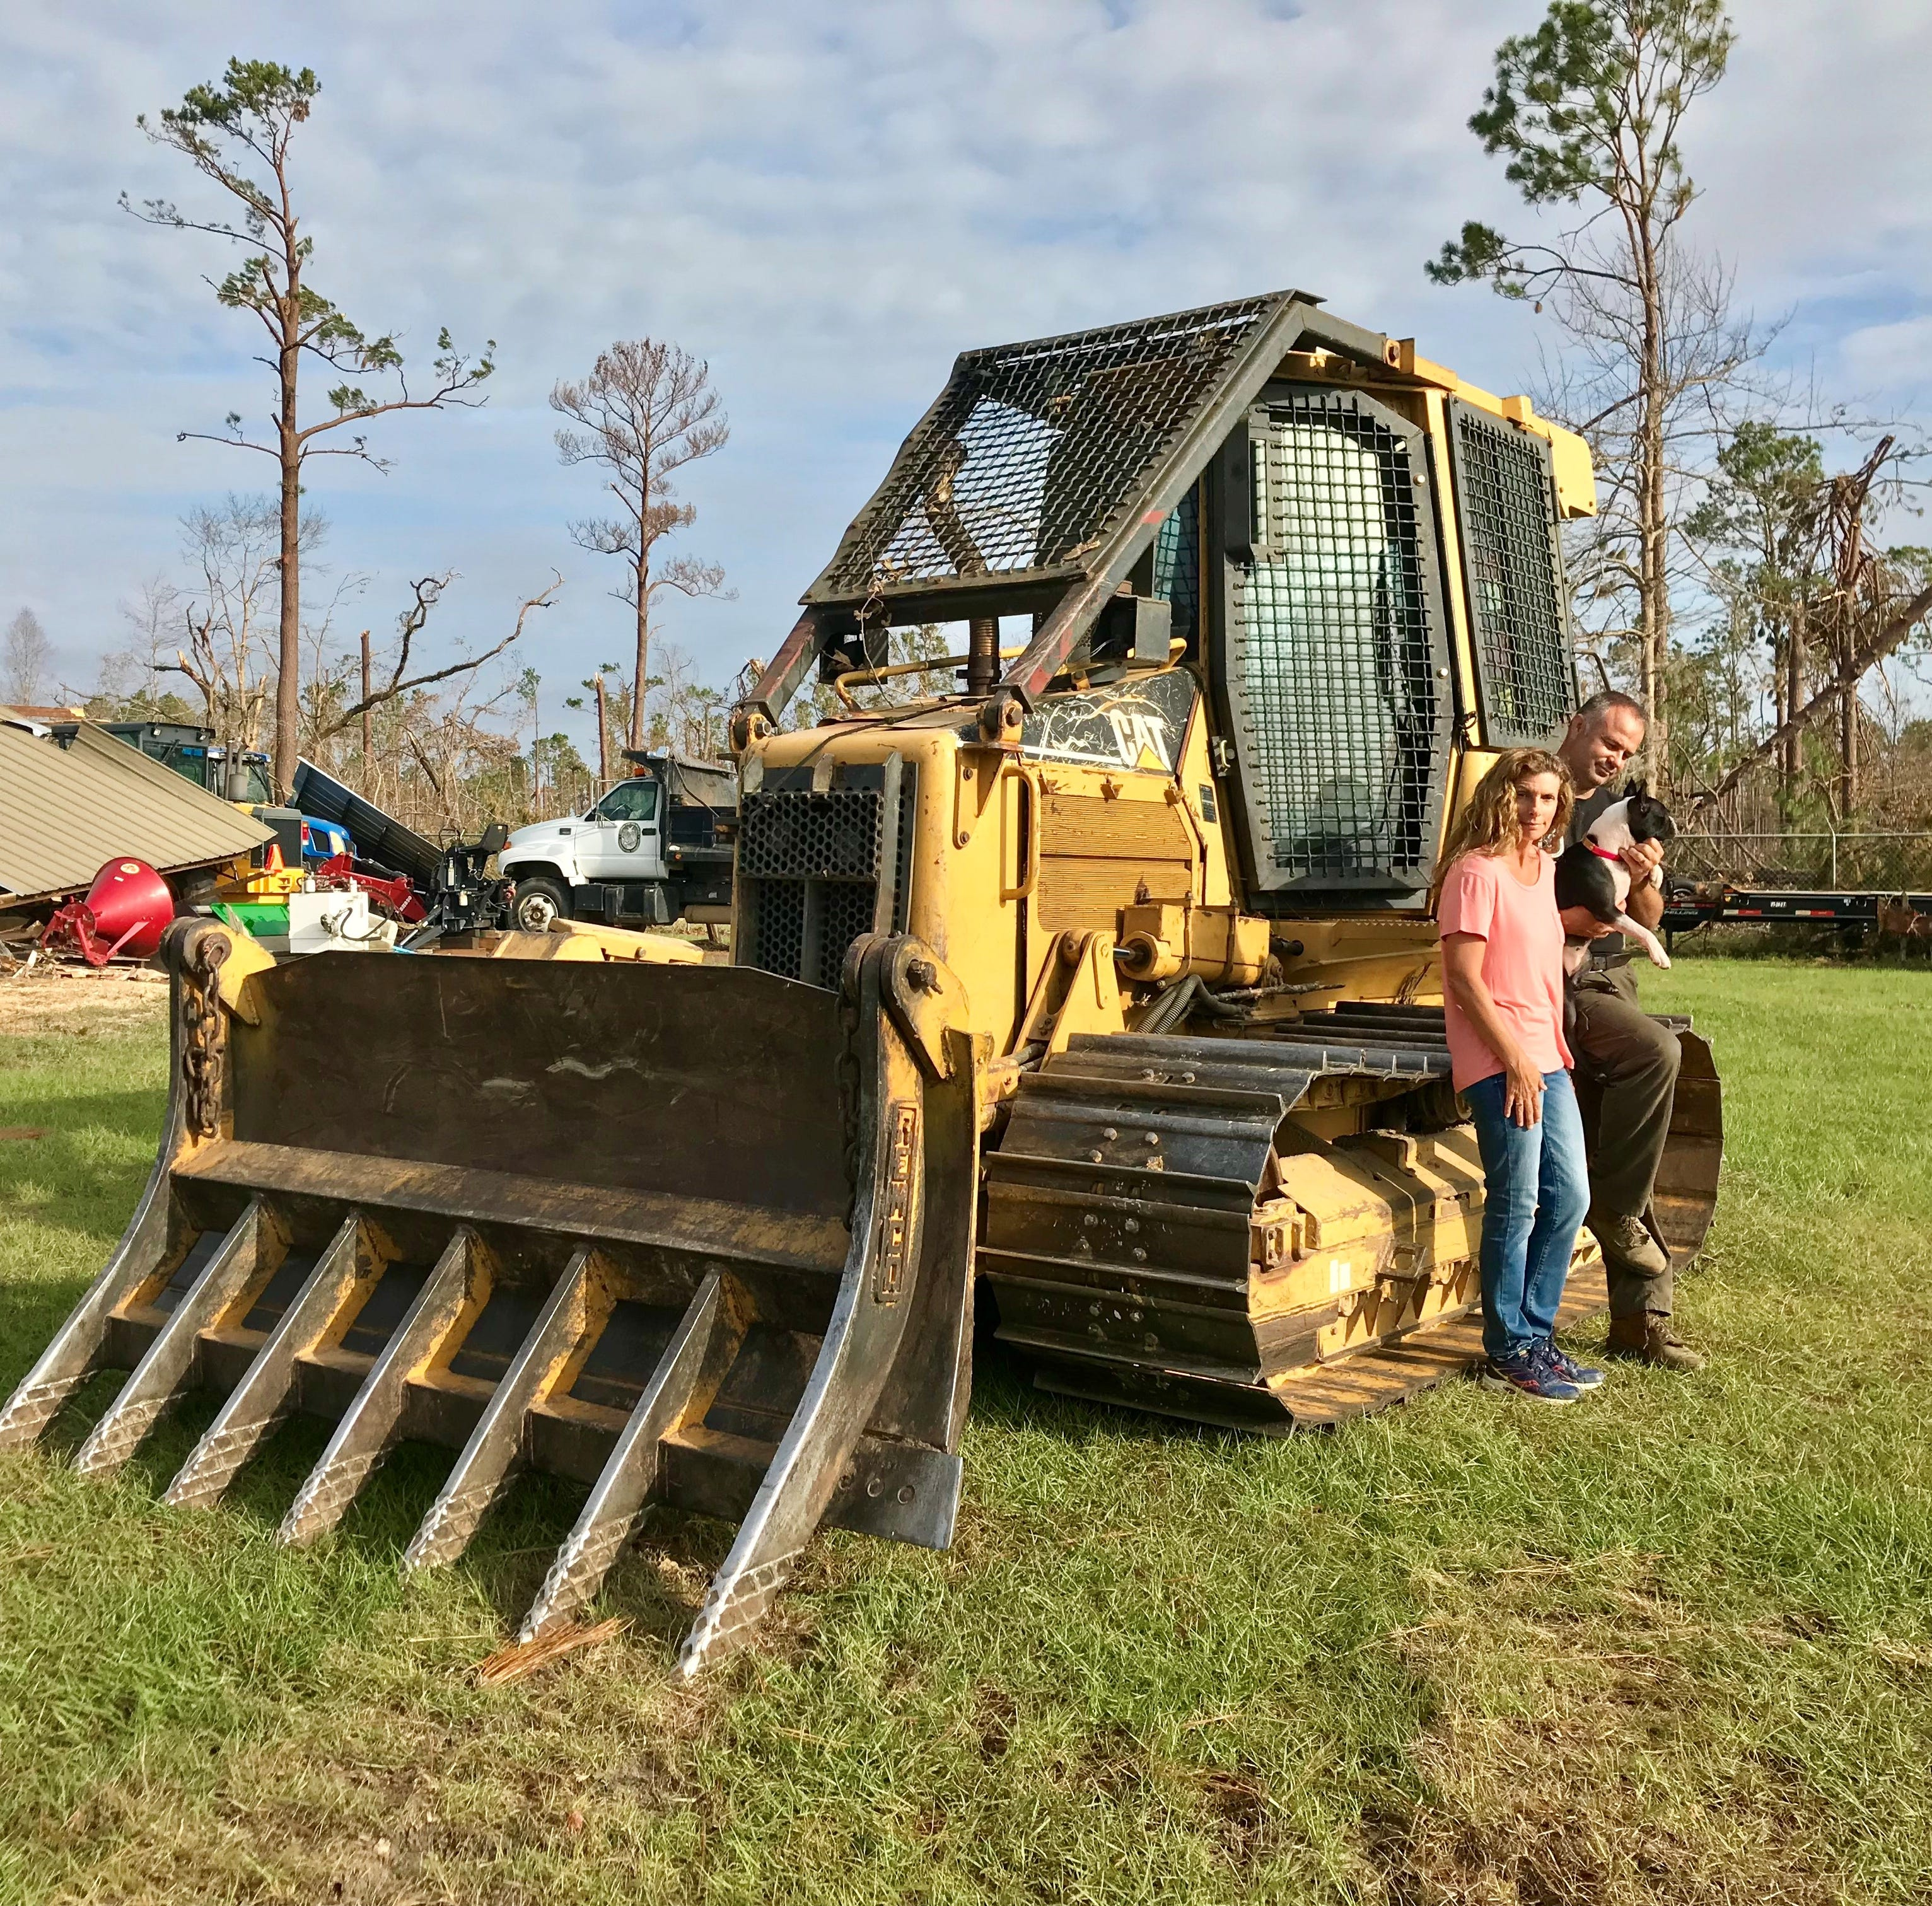 'Just praying for it to end': Family rides out Hurricane Michael in a bulldozer